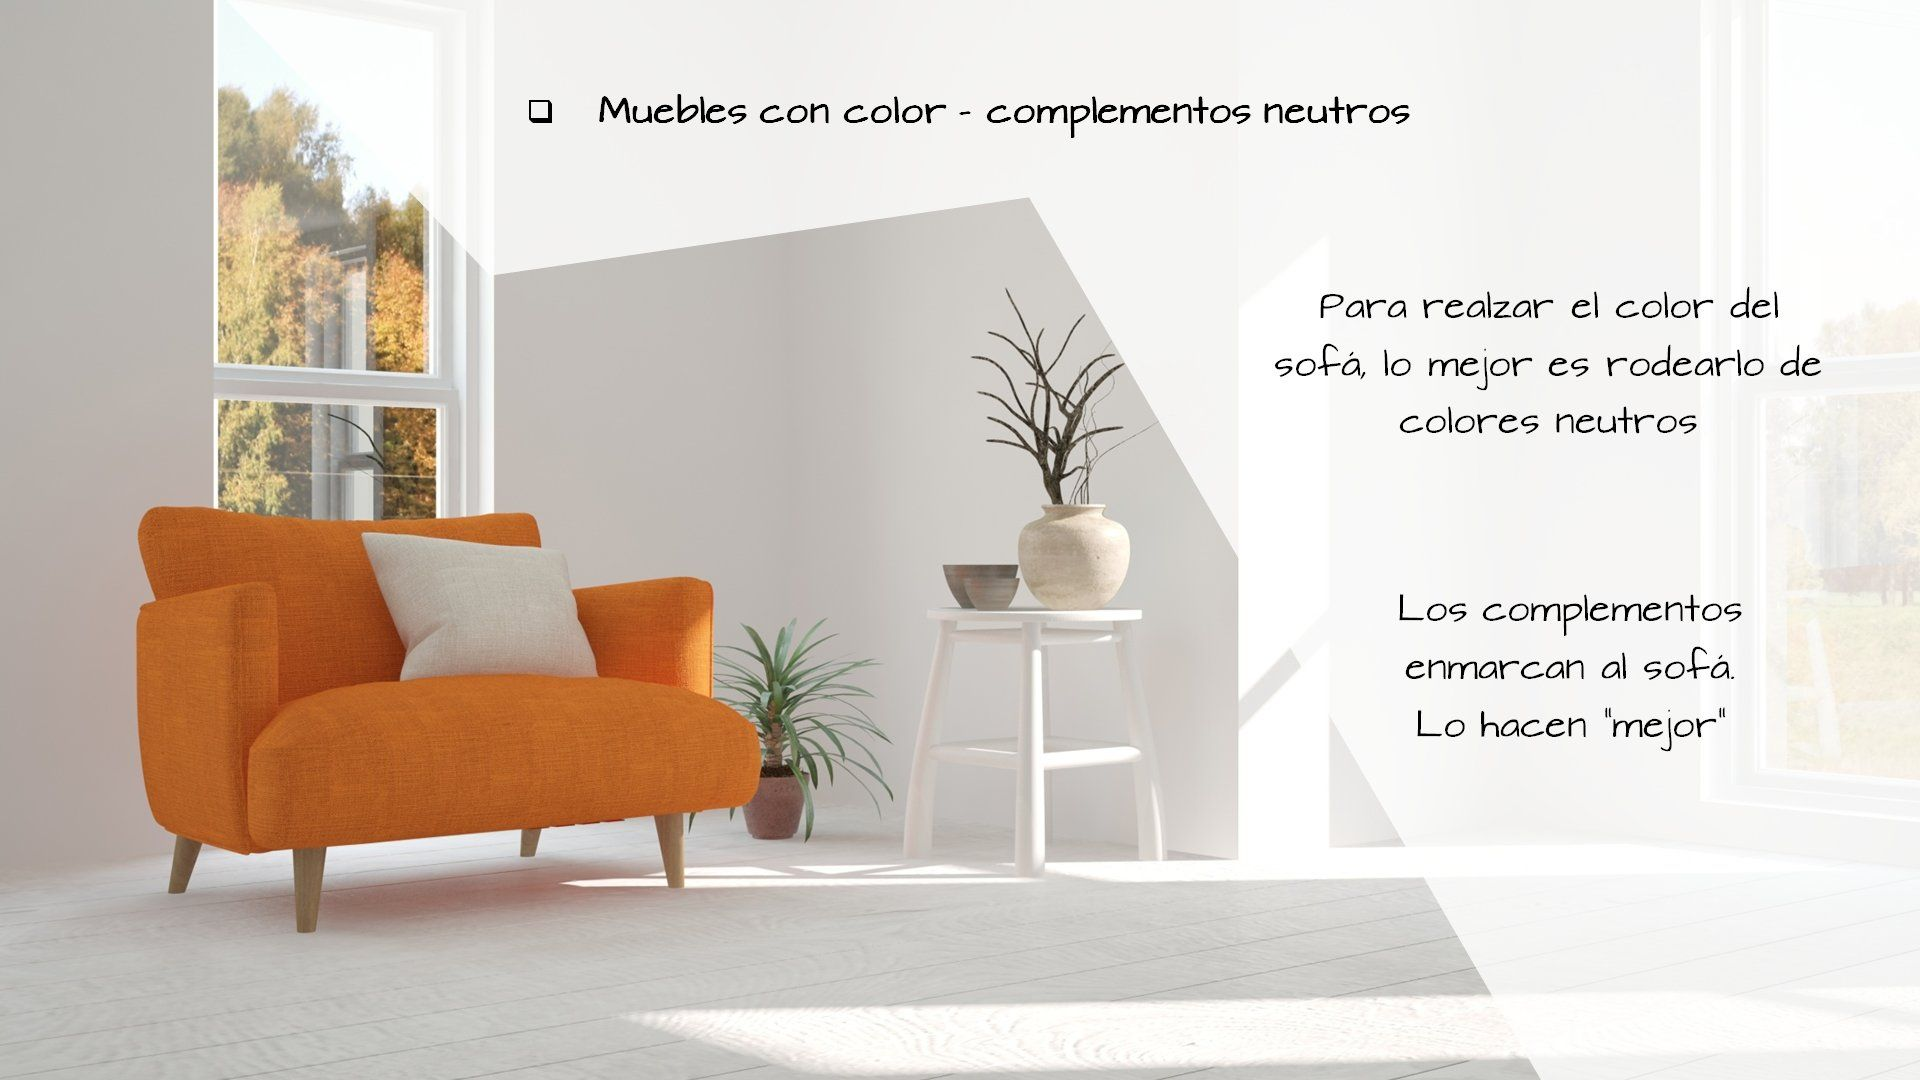 muebles con color